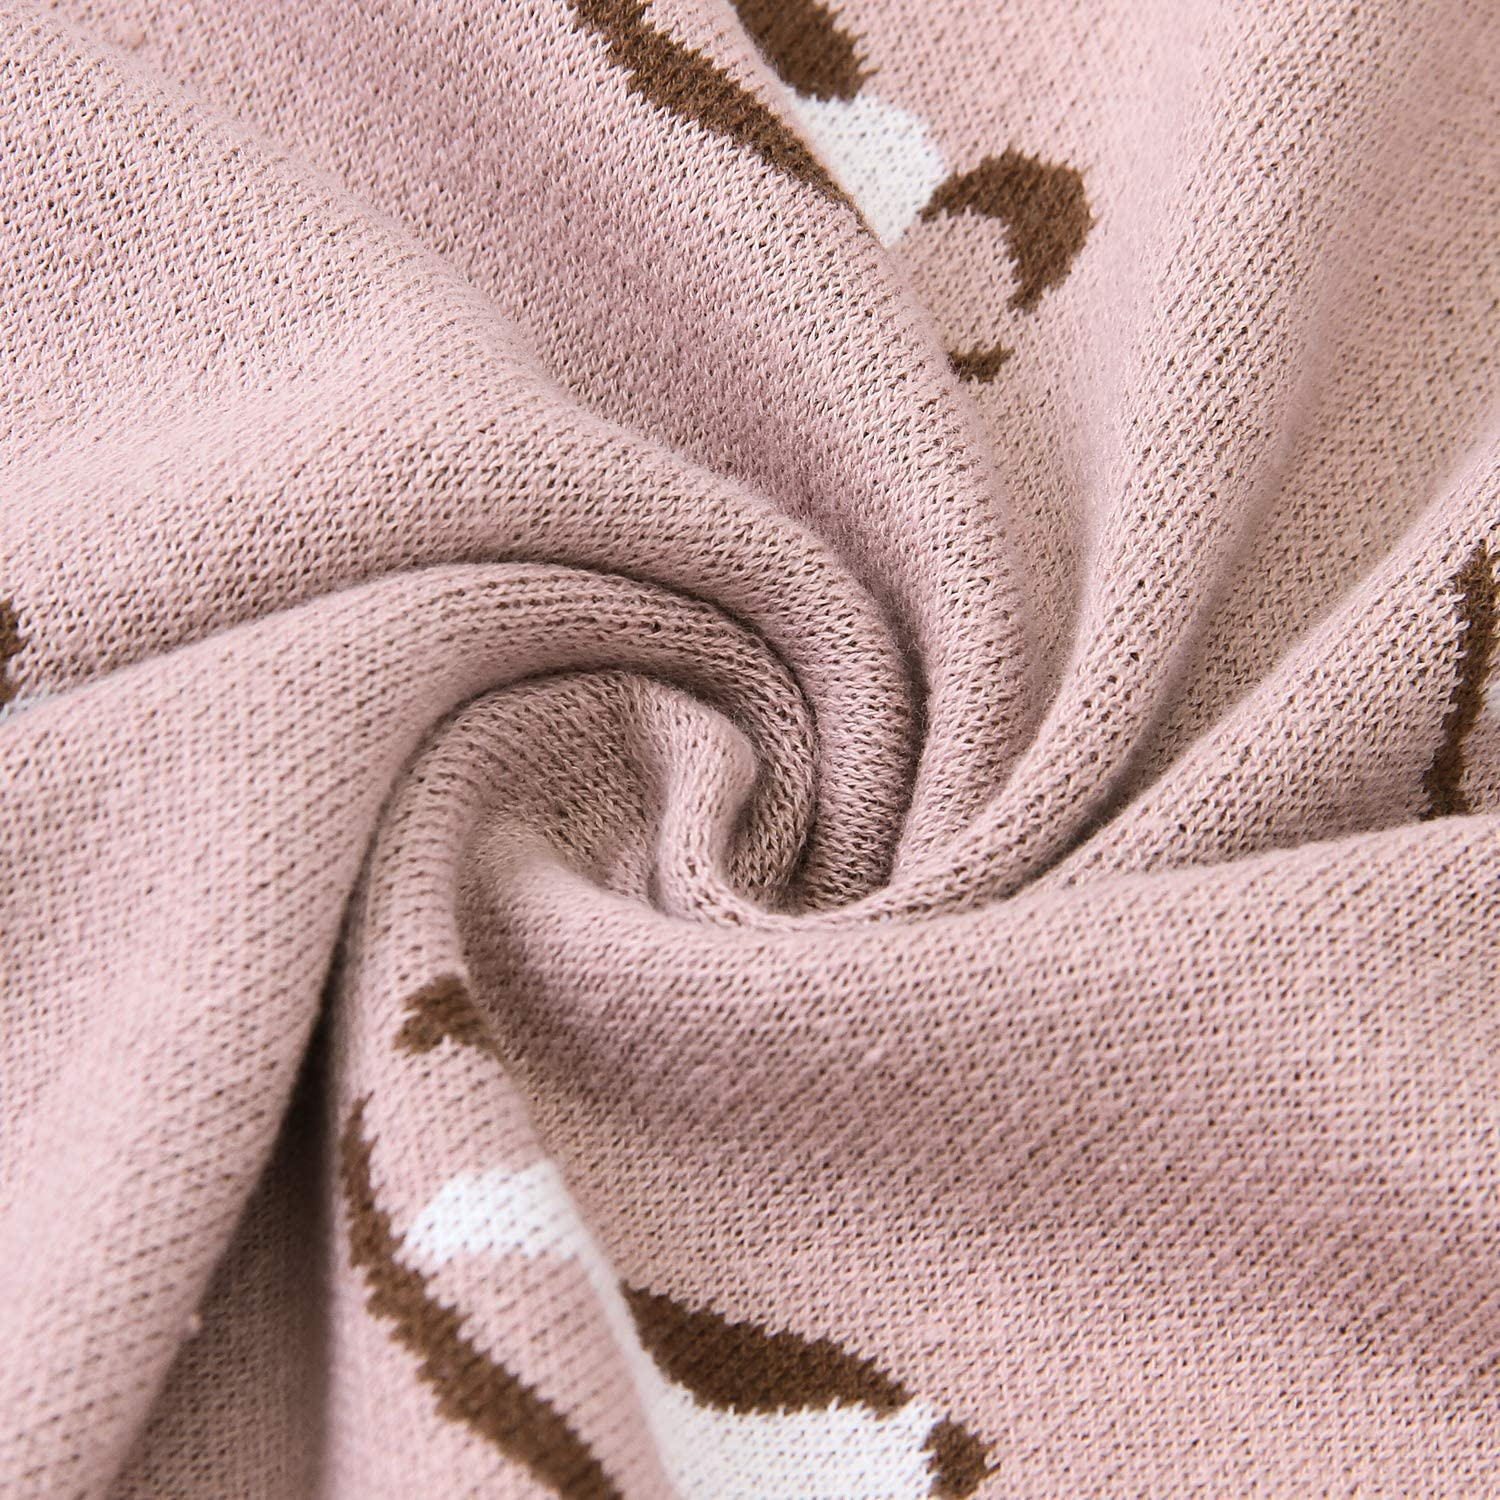 mimixiong 100/% Cotton Knitted Baby Blanket 80 x 100cm for Newborn Baby Coffee